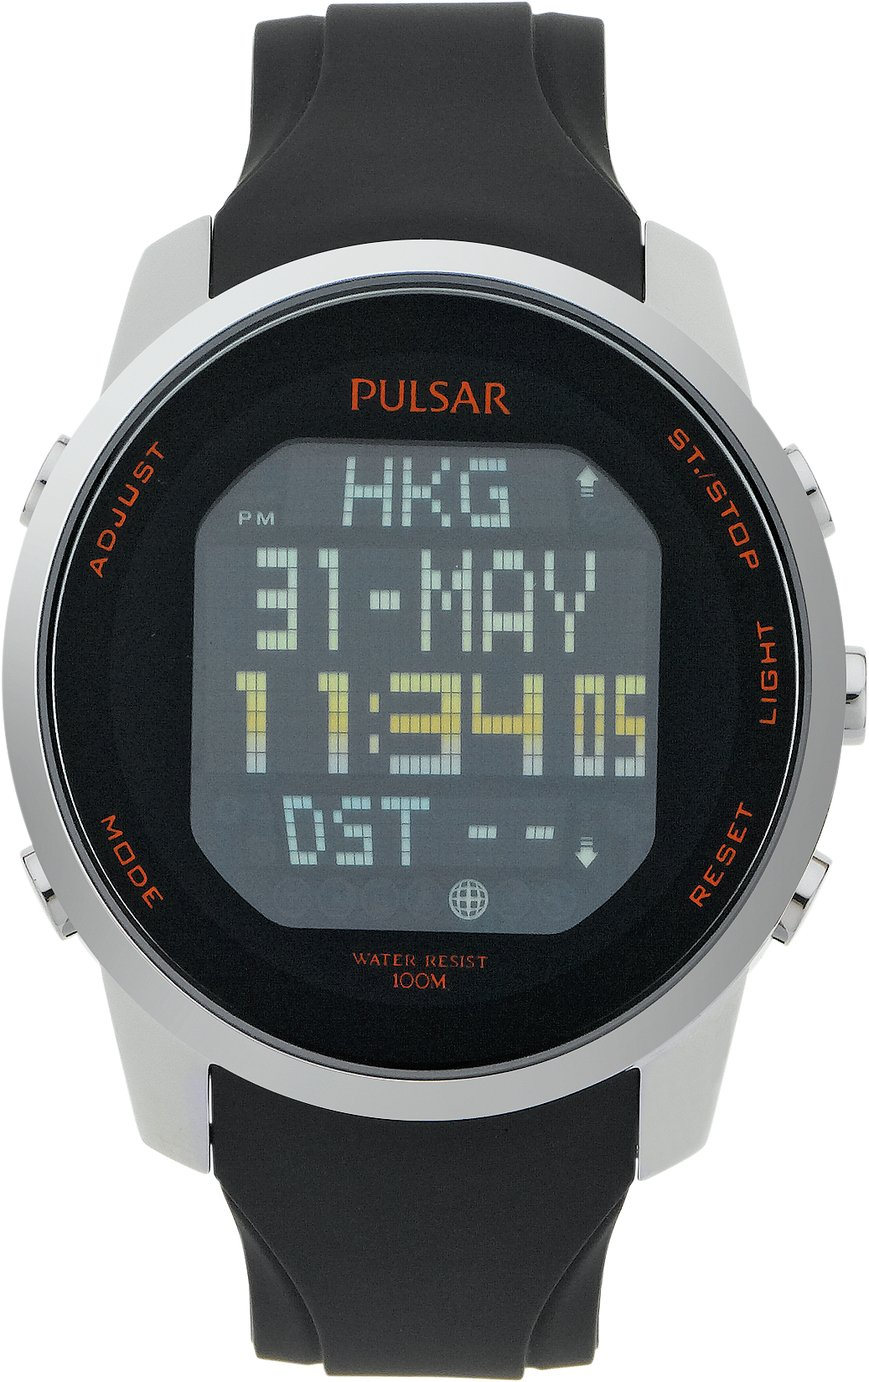 Pulsar Men's Black Silicone Strap Digital Watch